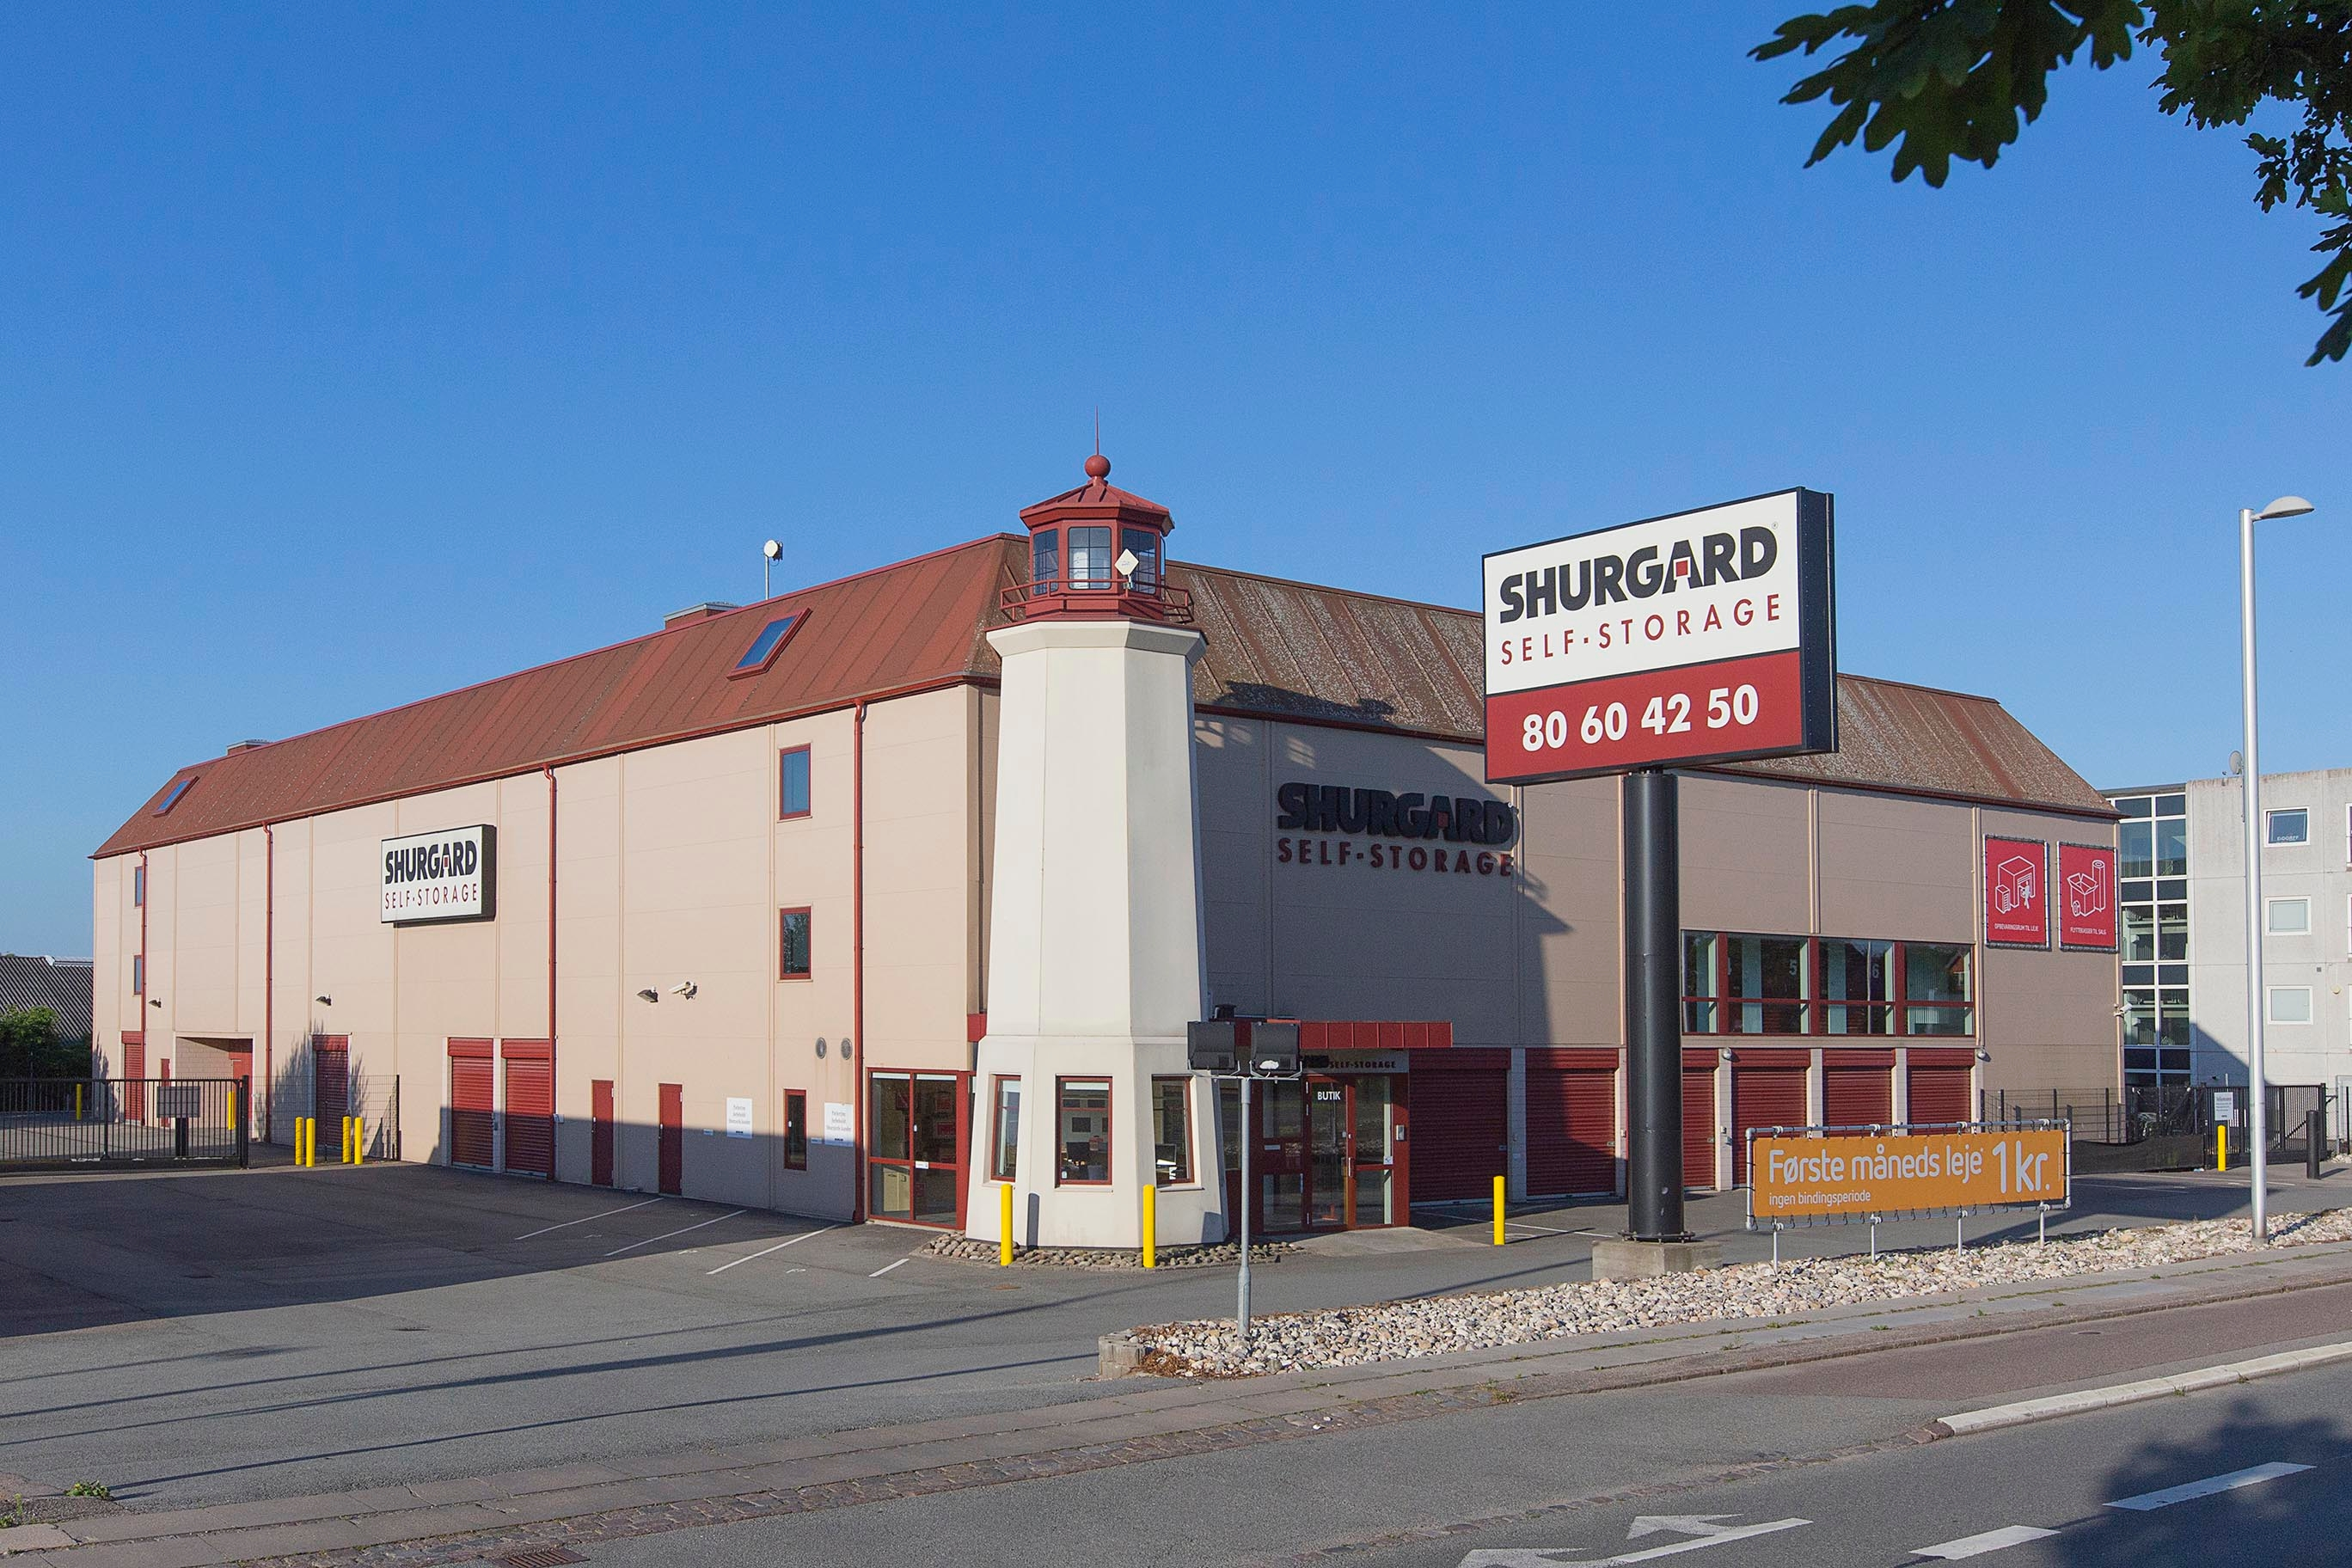 Shurgard Self-Storage Herlev